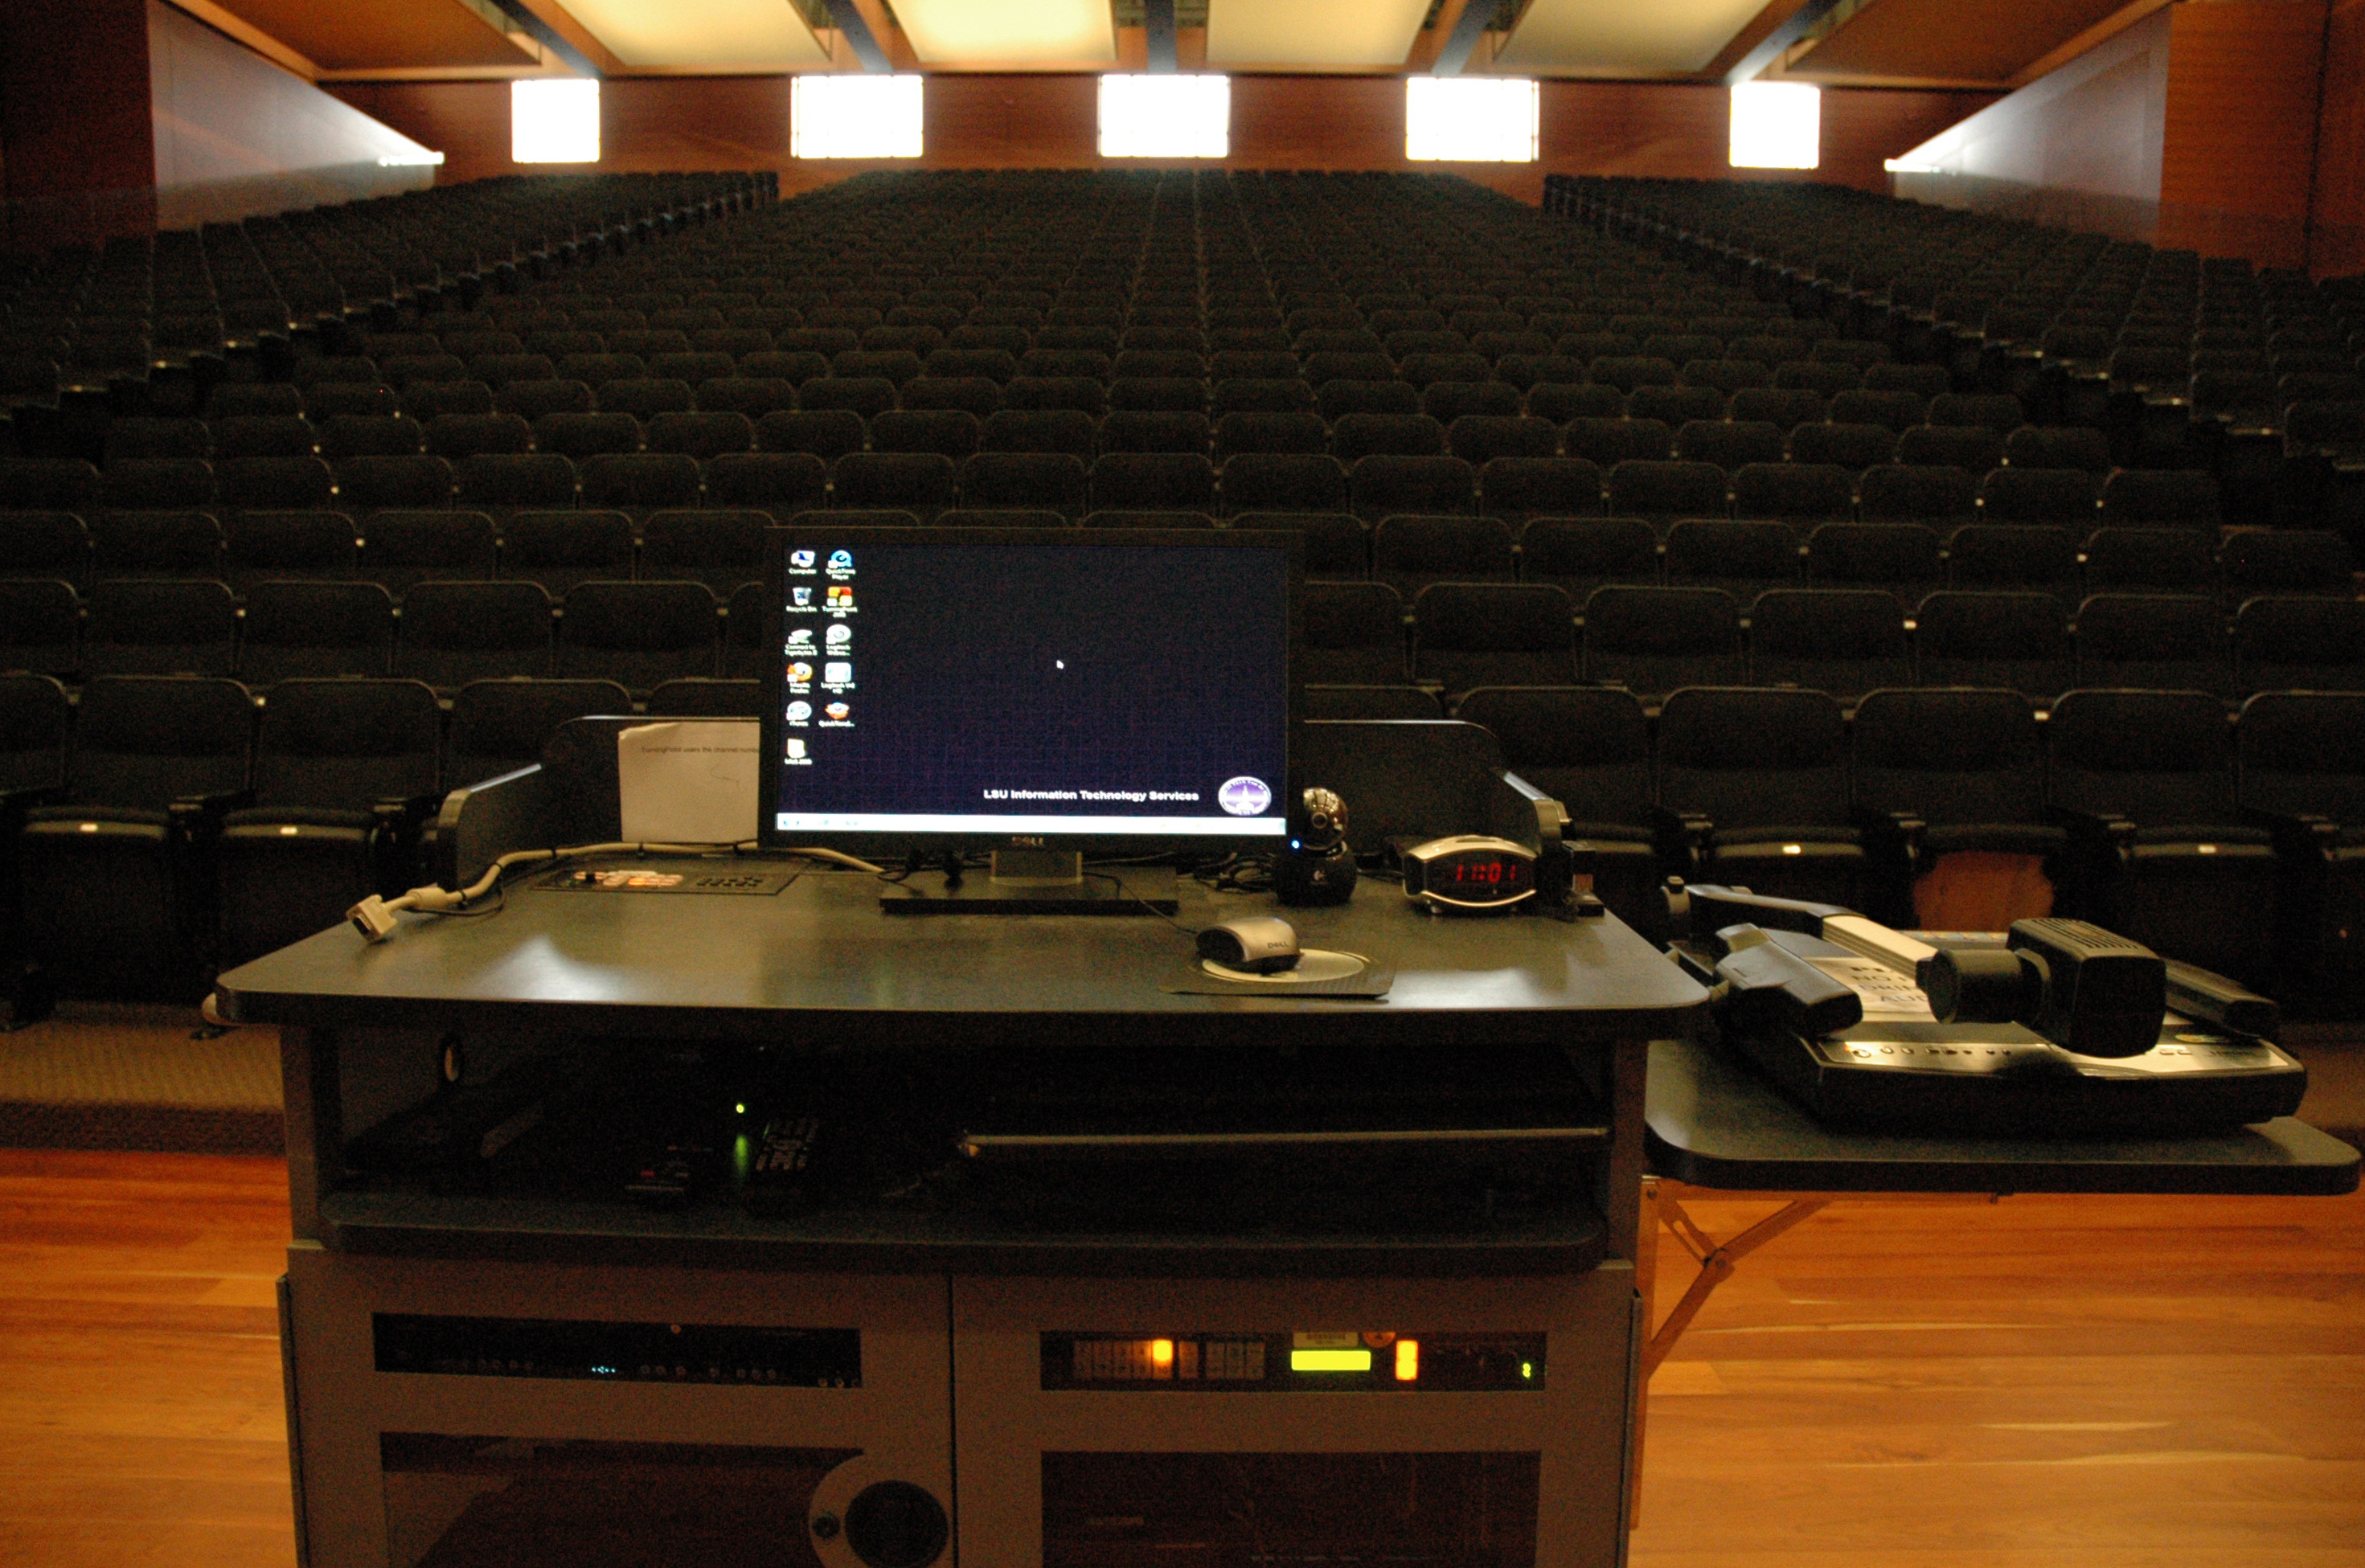 campbell's Multimedia podium overlooking classroom